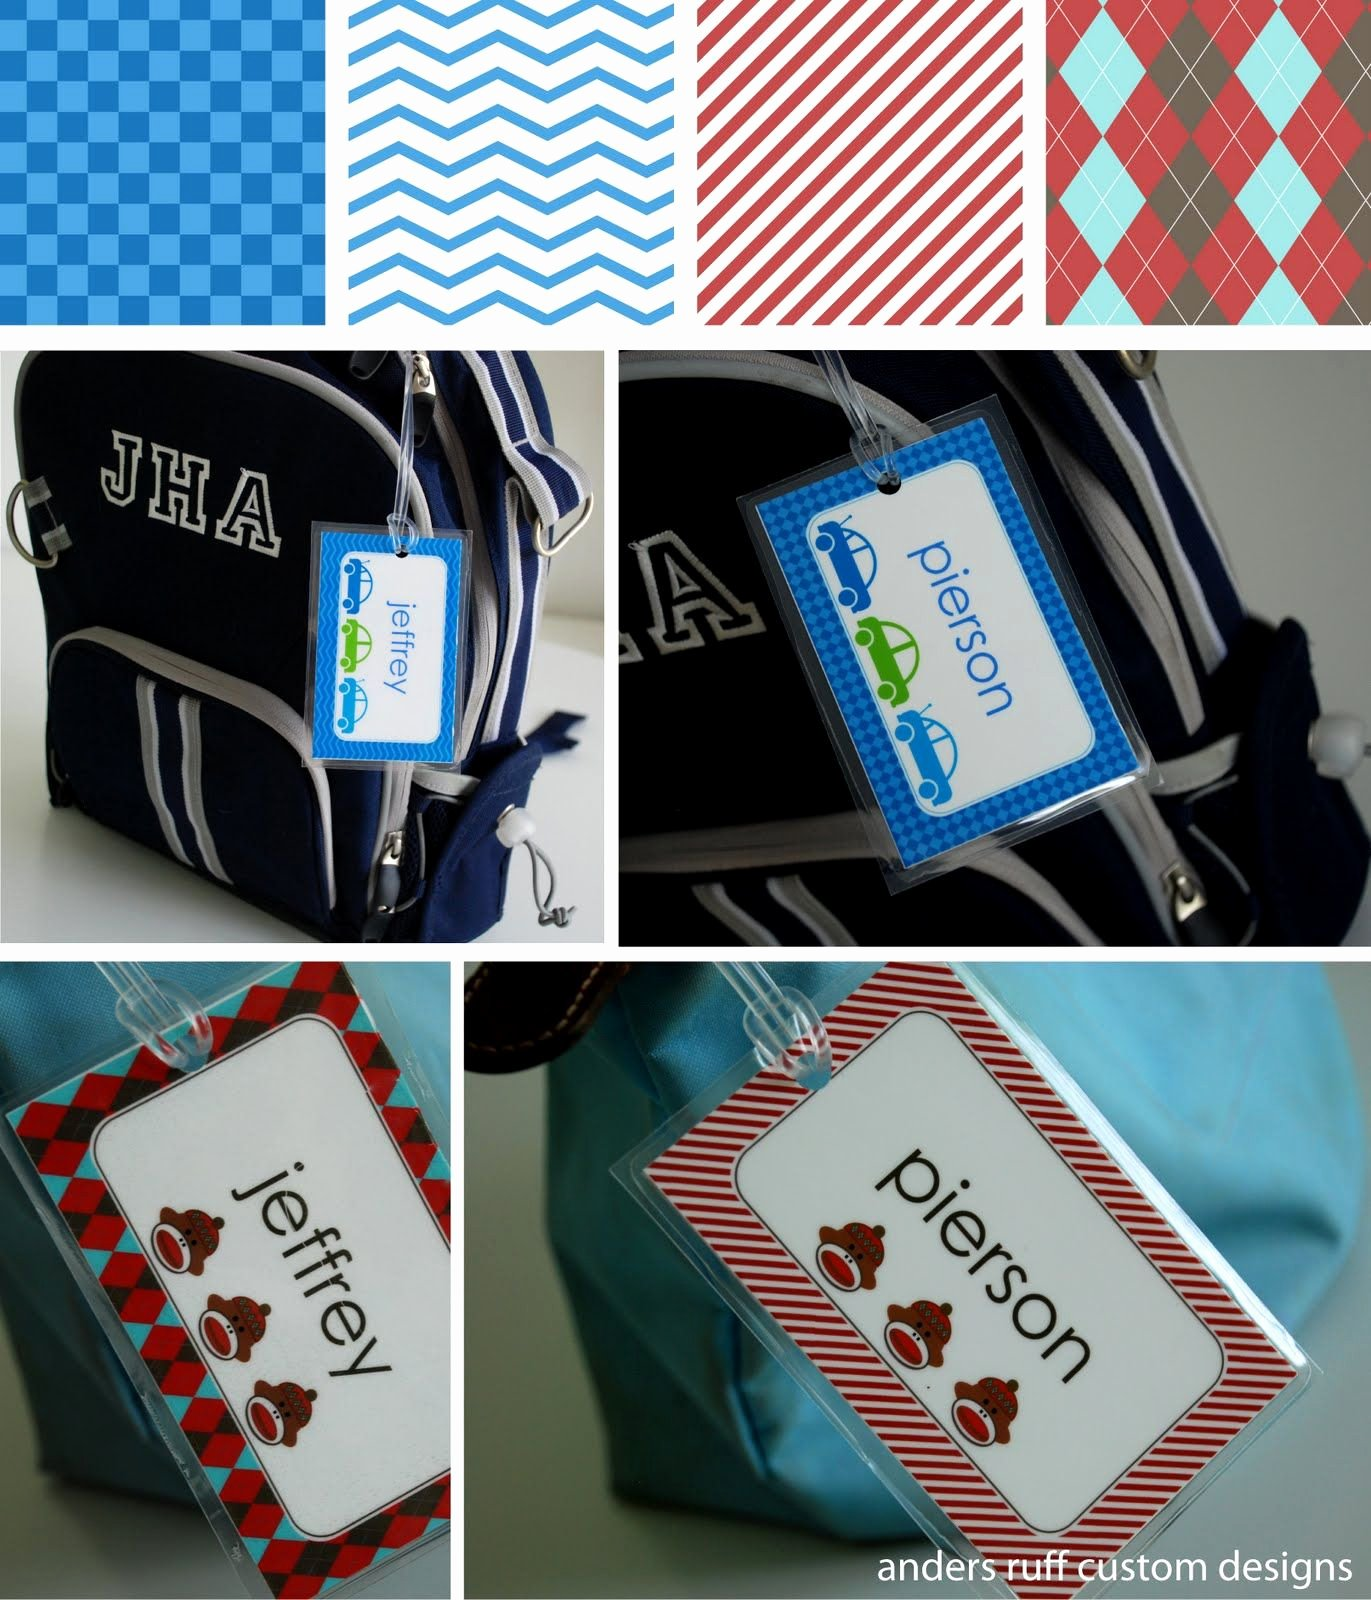 Diy Luggage Tags Template Elegant Fabulous Features by anders Ruff Custom Designs Free